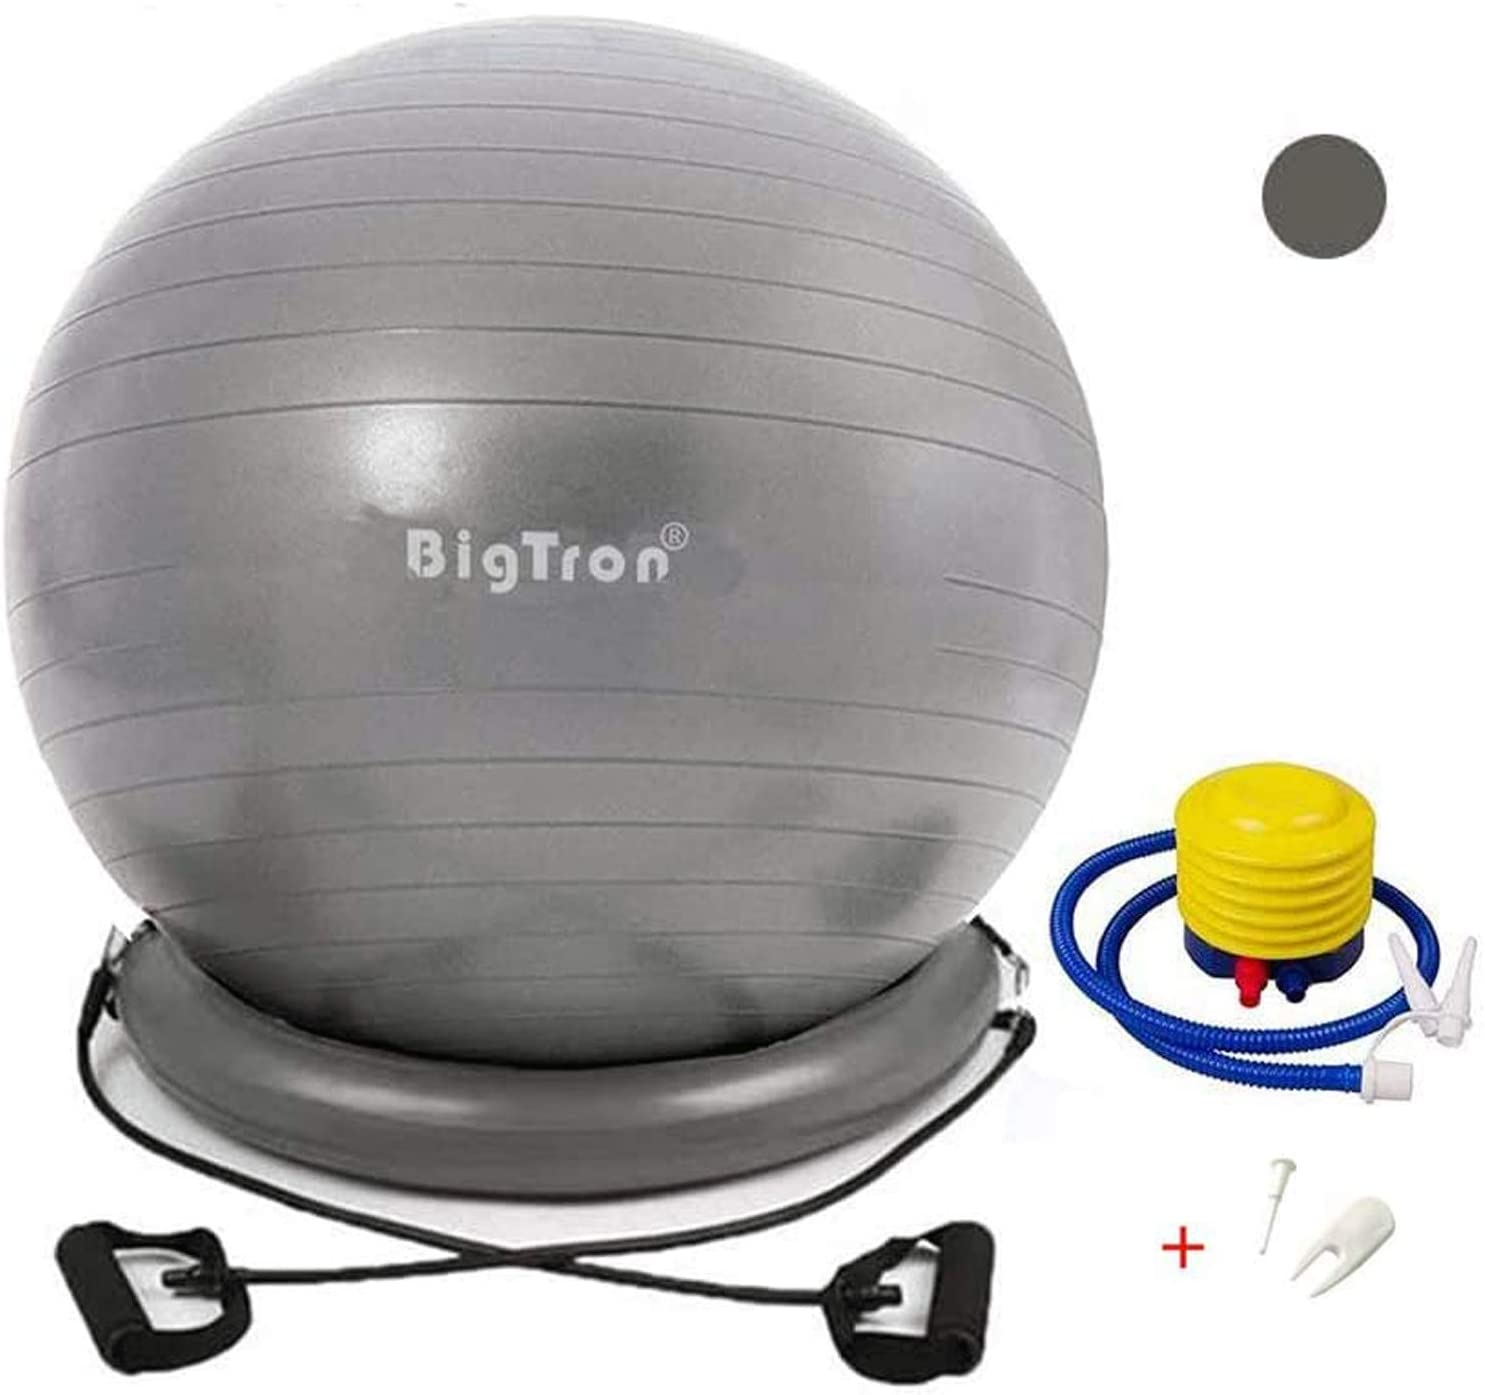 BigTron Yoga Ball Chair (65cm) - Stability Exercise Ball with Base and Resistance Bands (Anti-Burst up to 2000lb) - Improves Core Strength, Balance, Back Pain. Ideal for Office Chair, Yoga & Fitness